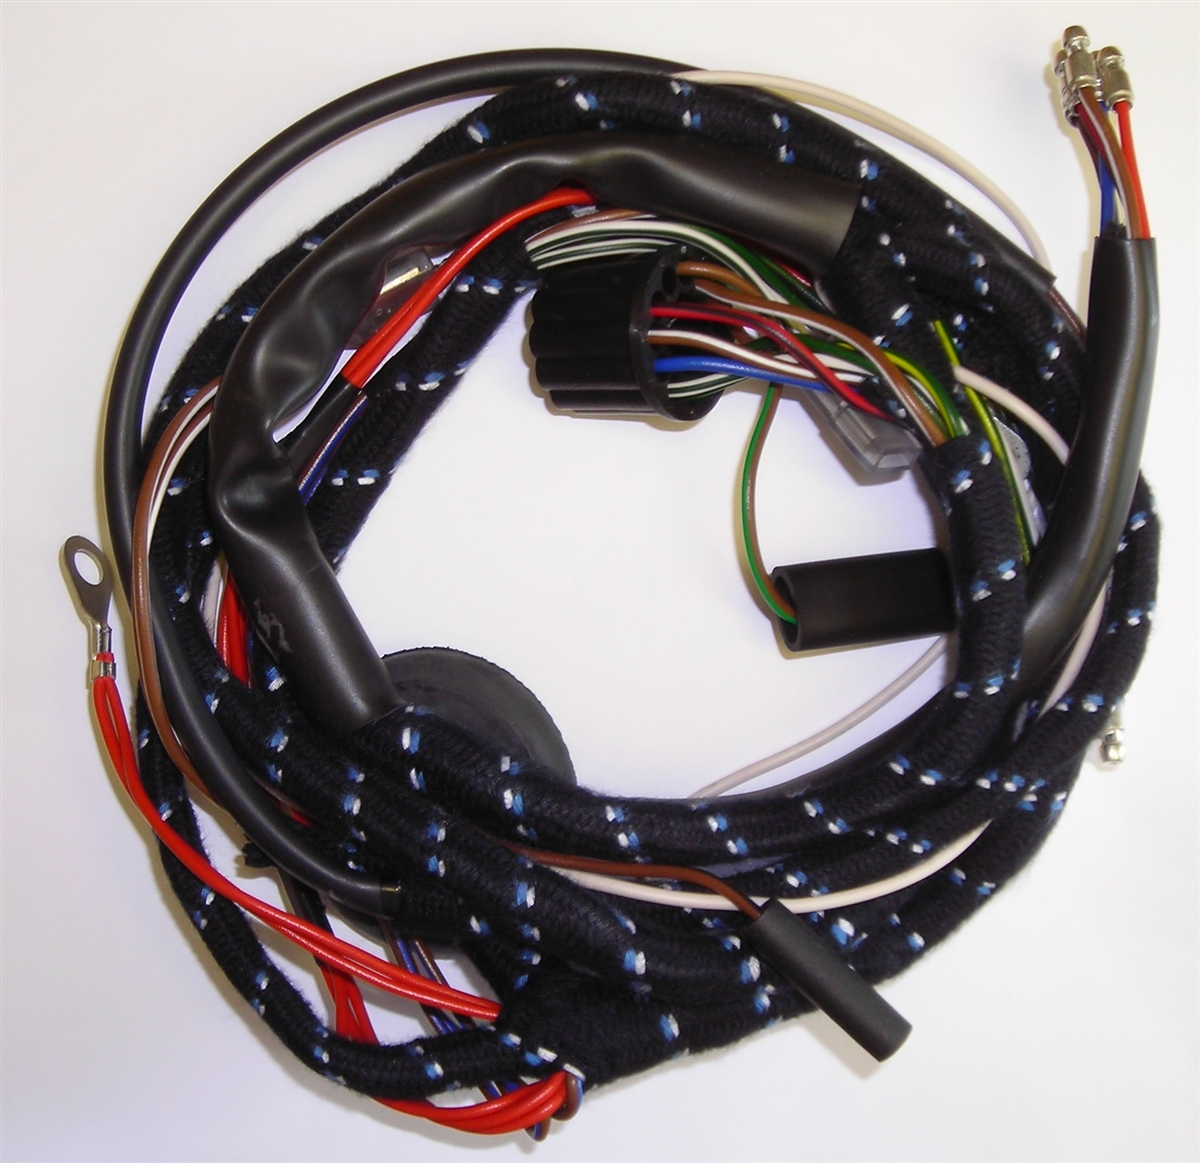 bike wiring harness wiring diagram used pit bike wiring harness bike wiring harness [ 1200 x 1163 Pixel ]